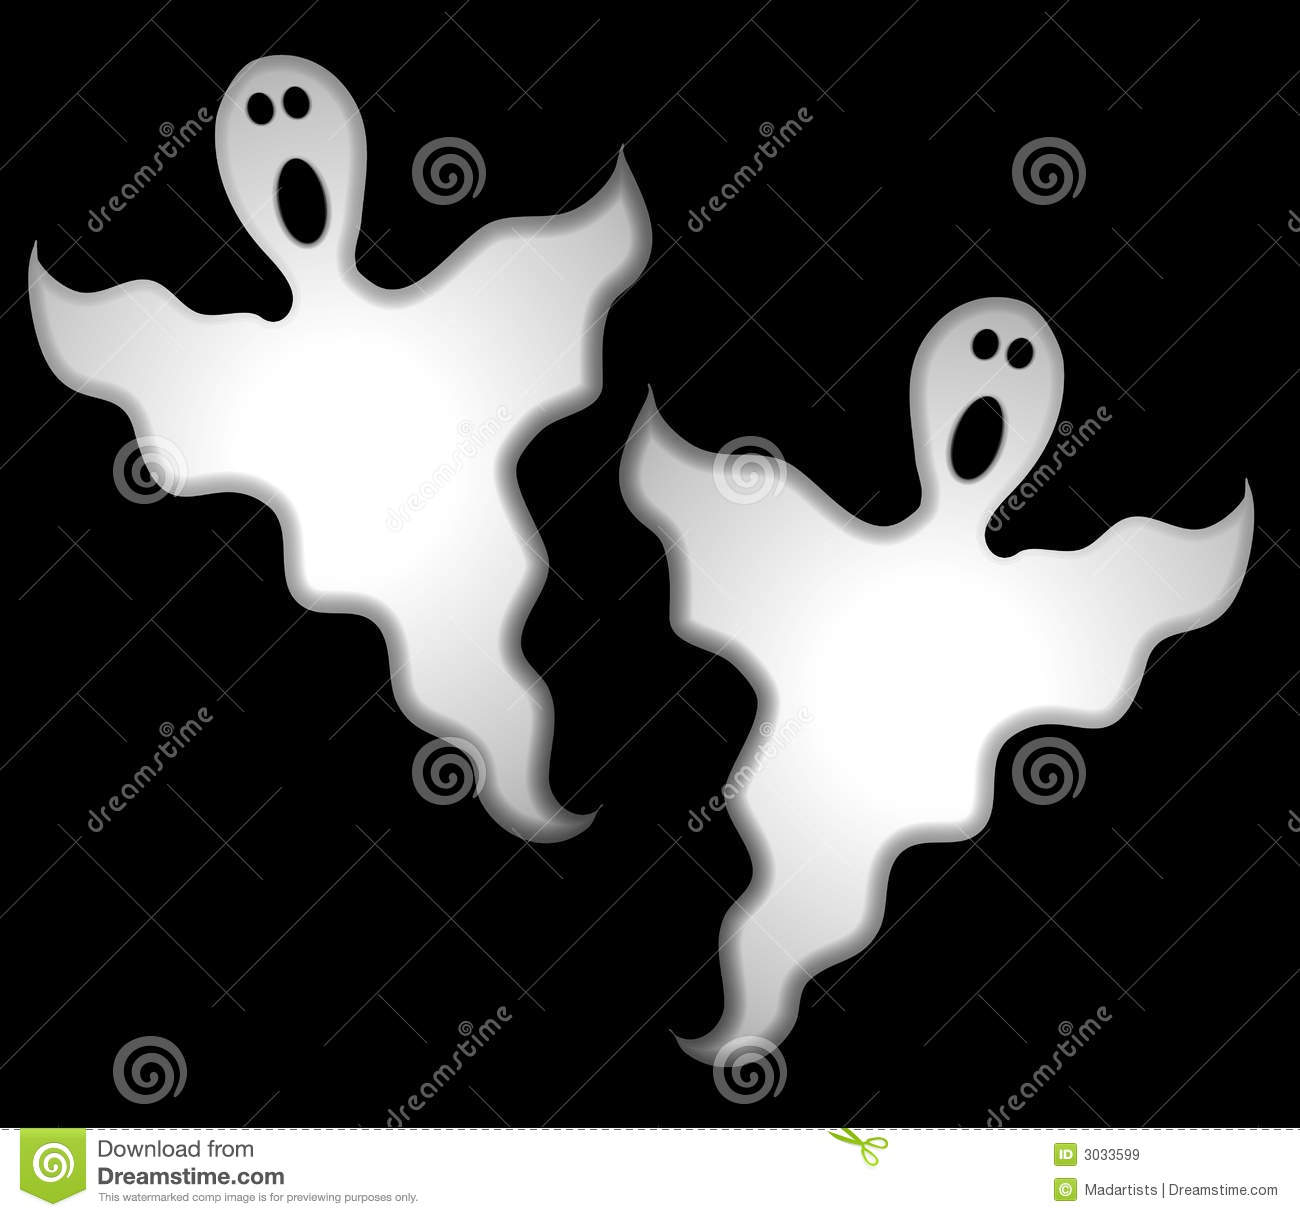 clip art illustration of a pair of spooky looking ghosts in white ...